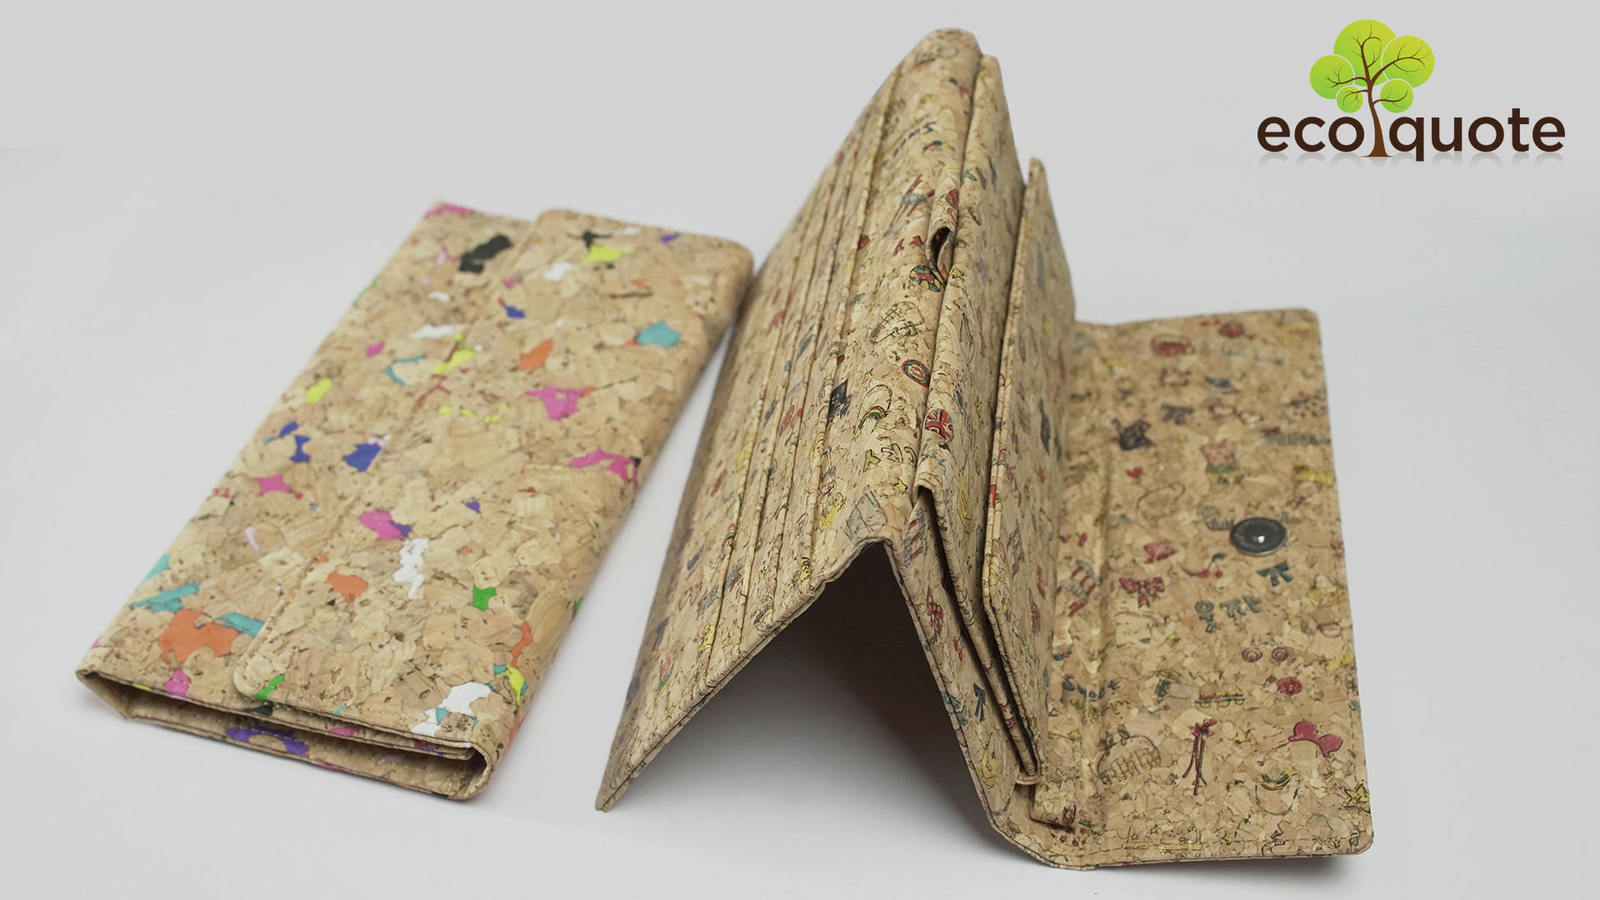 EcoQuote EcoFriendly Handmade Tri Fold Letter Long Wallet Wristlet Cork Material